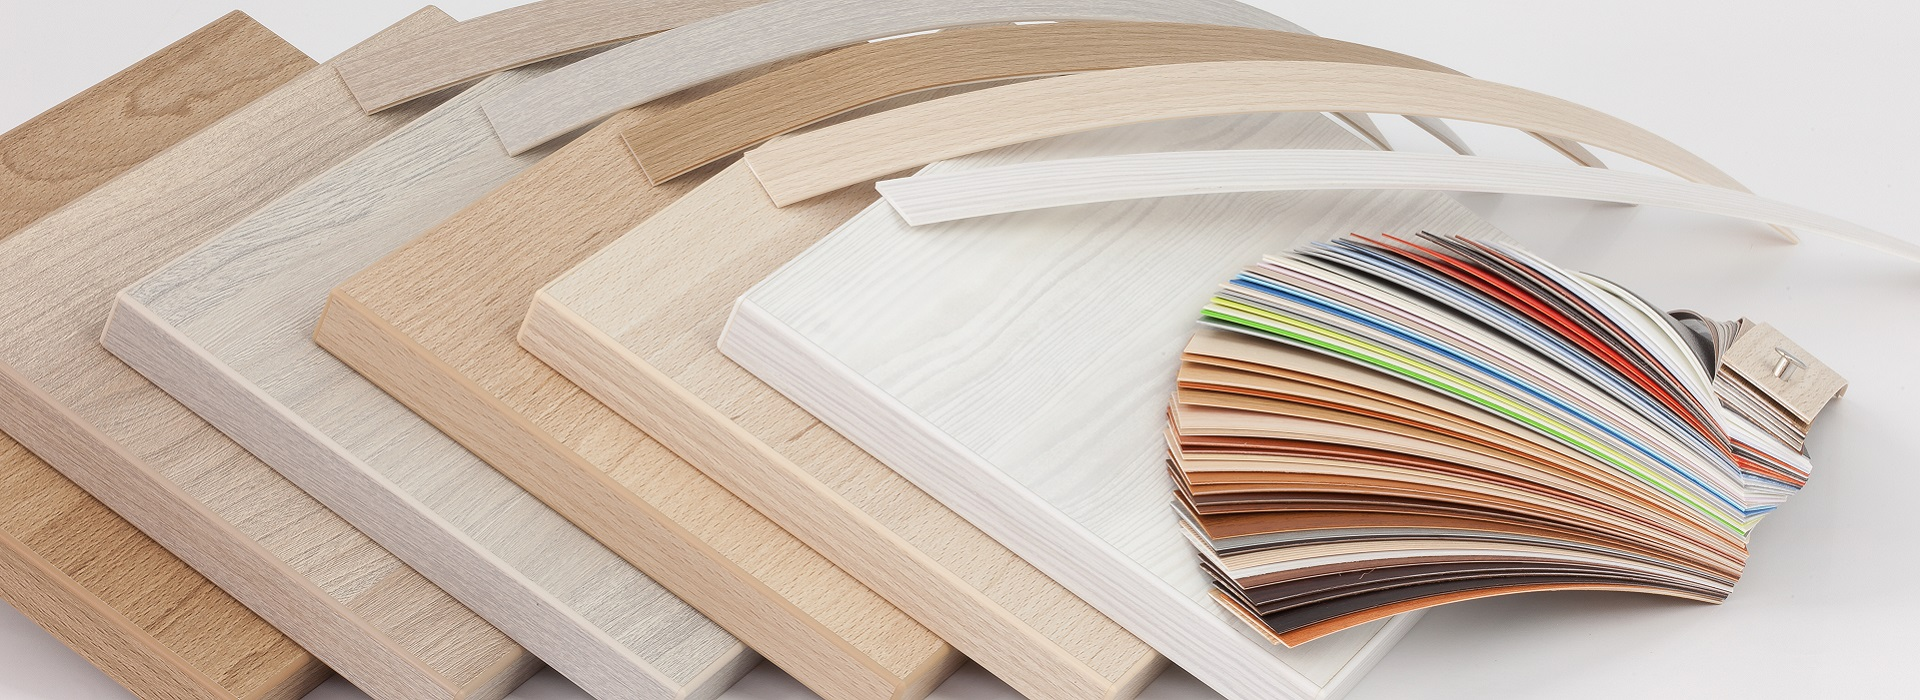 Rich collection of edgebands for each furniture board